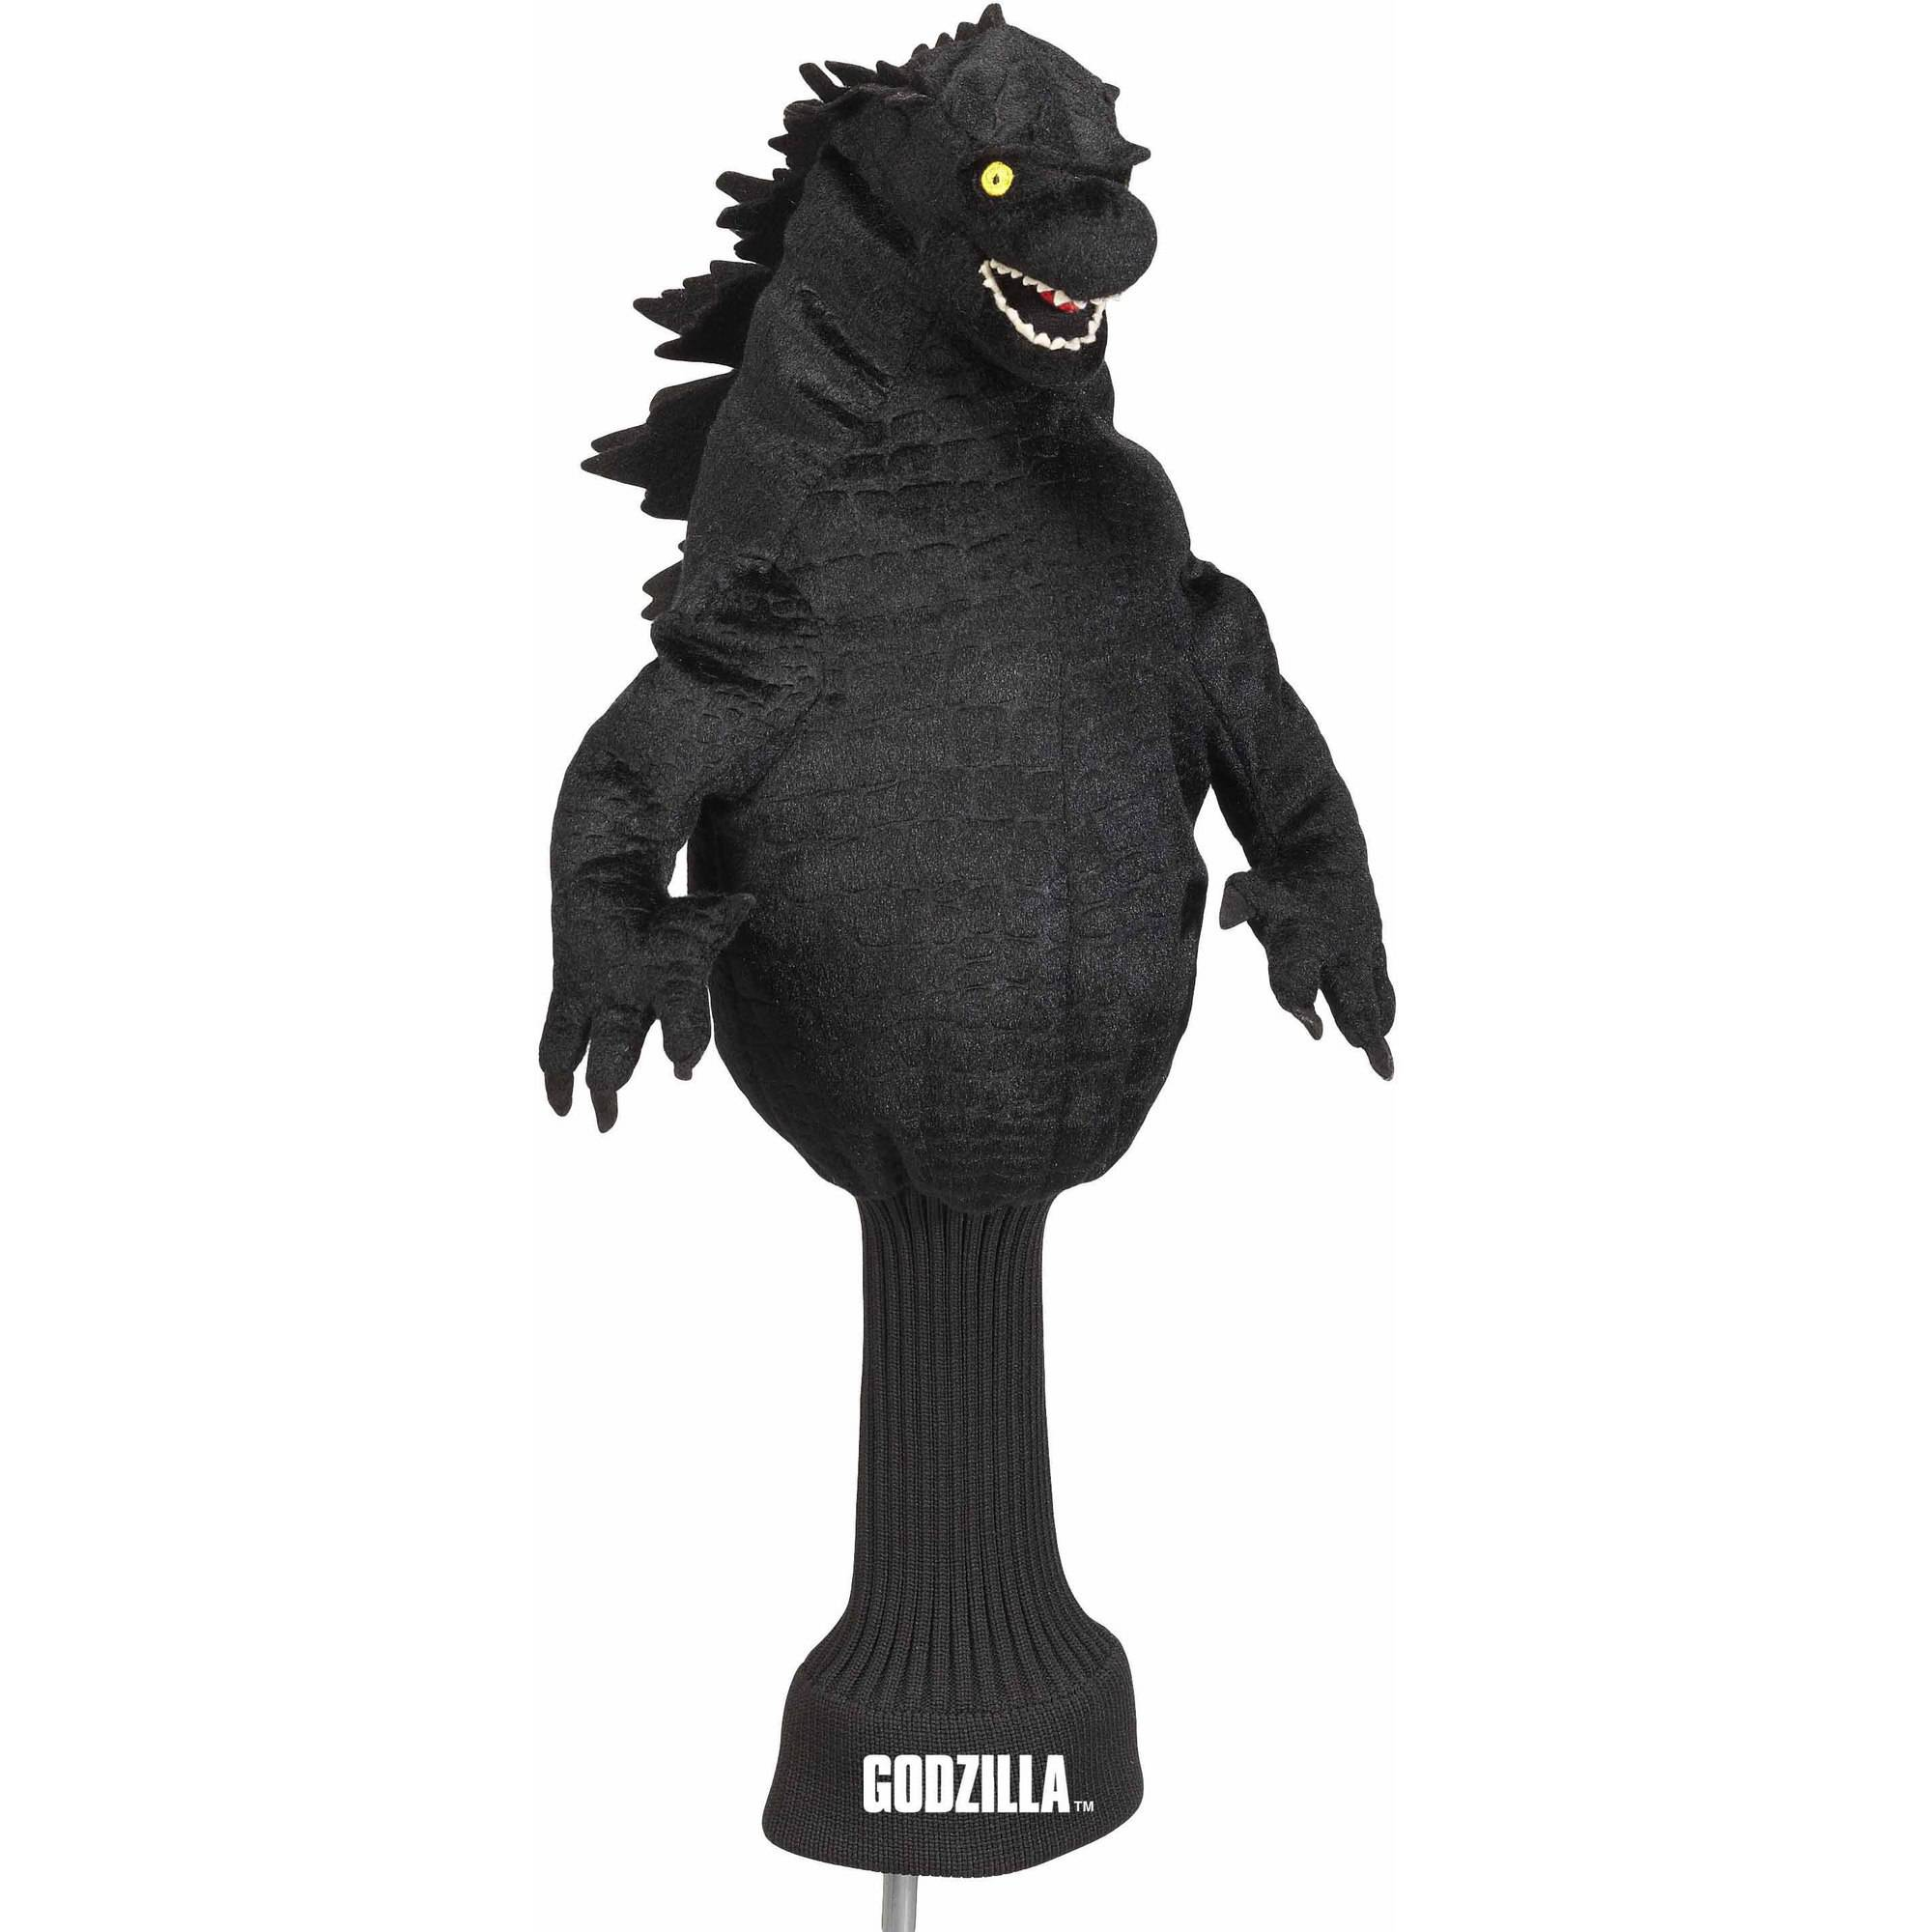 Creative Covers For Golf Godzilla Driver Cover by Creative Covers